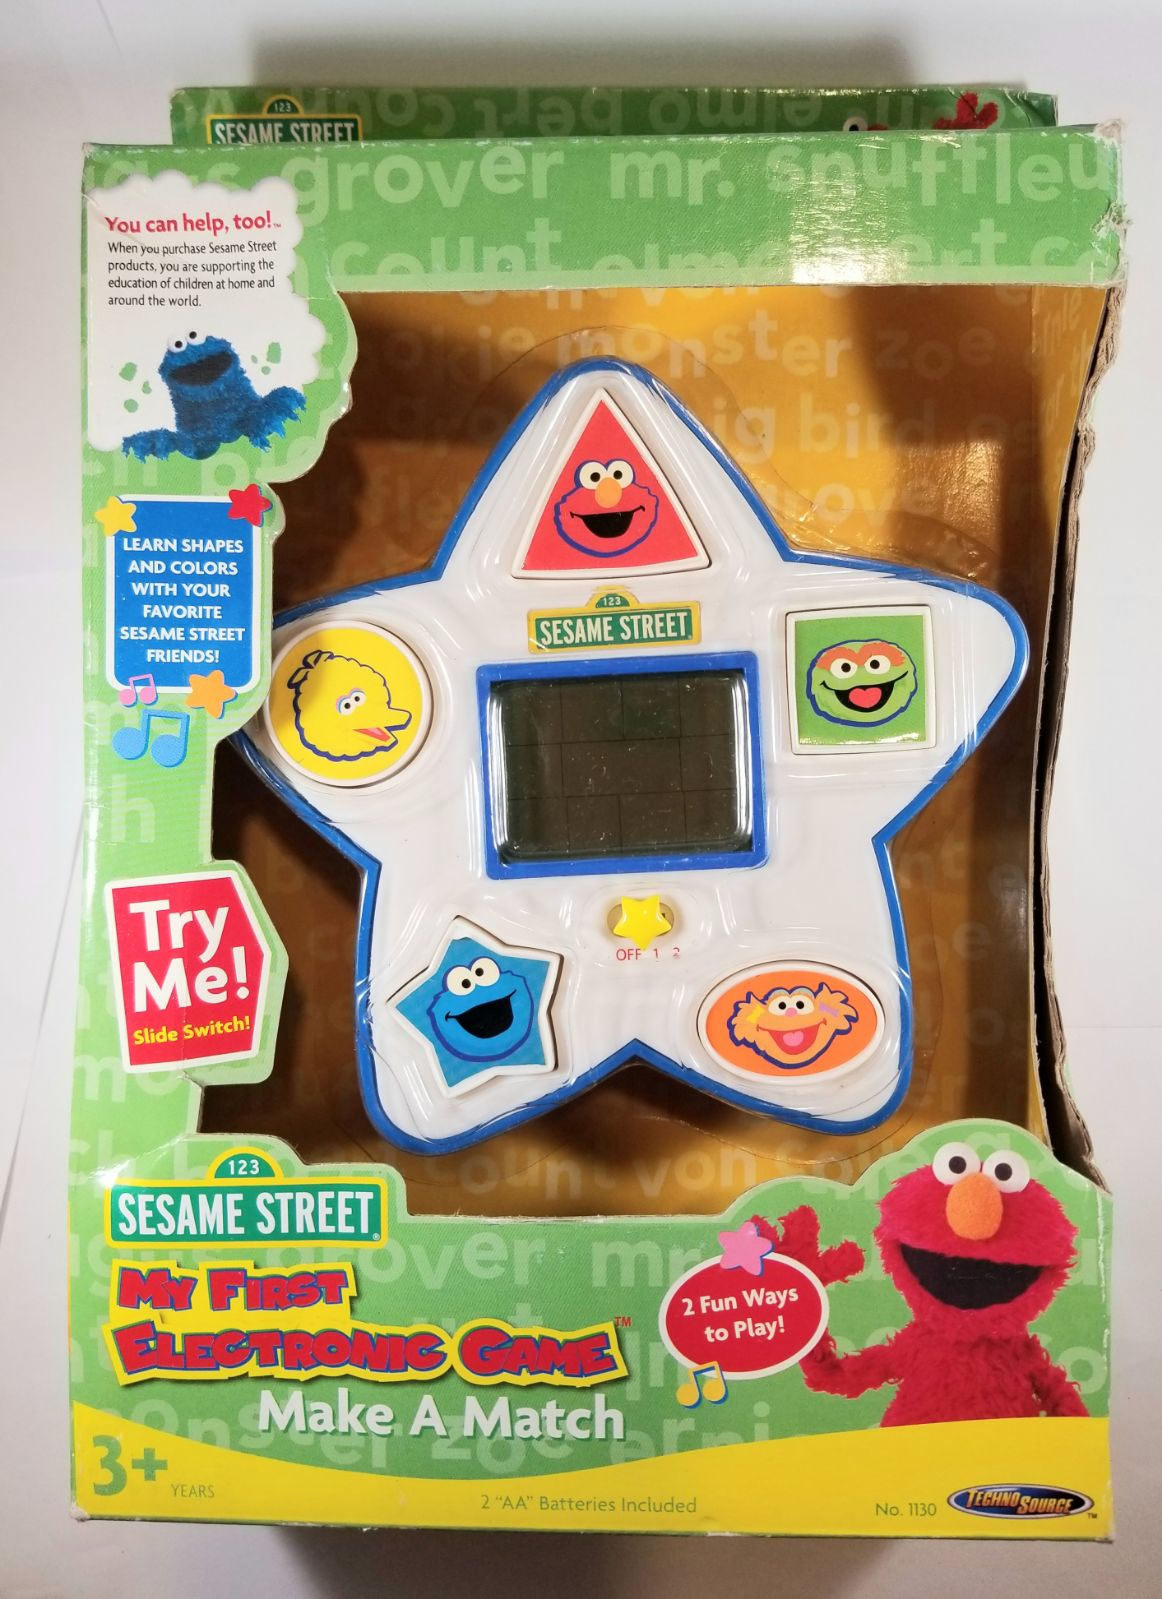 SESAME STREET My First Electronic Game